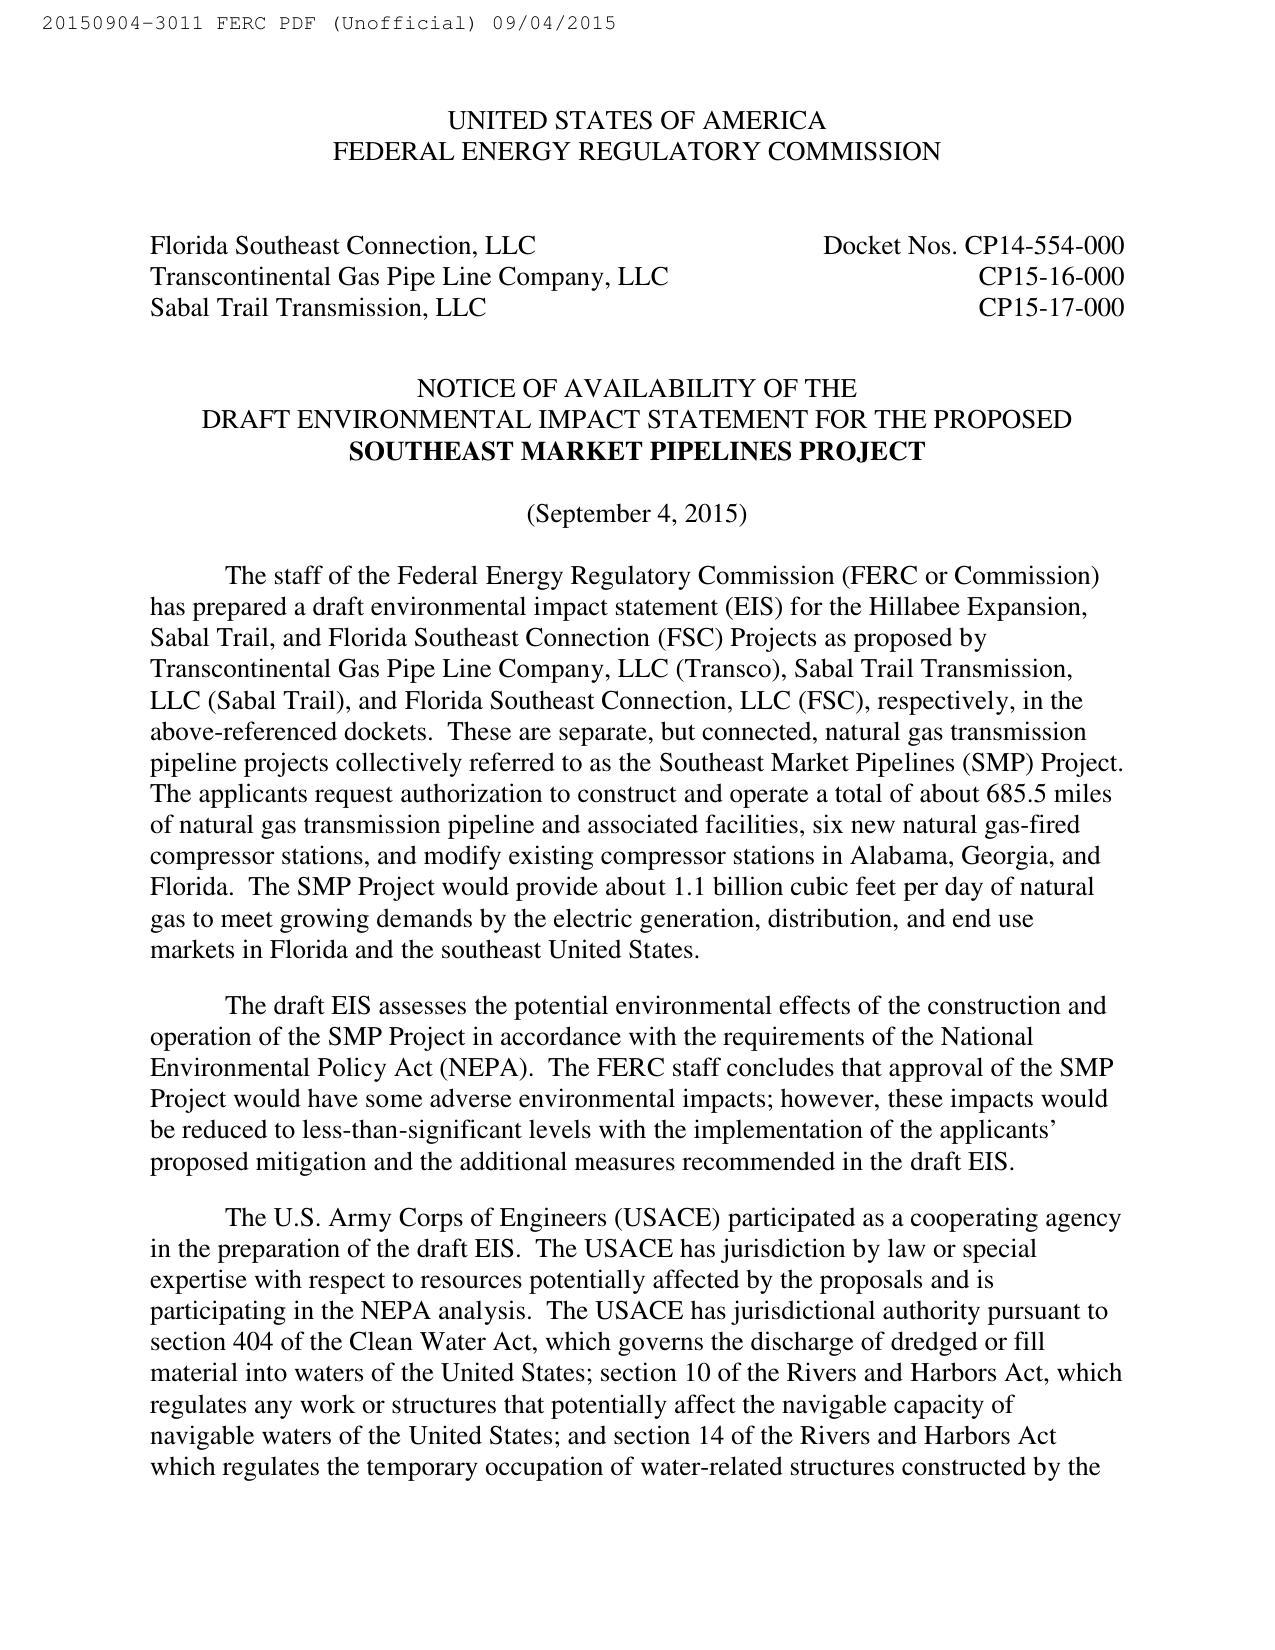 1275x1650 Notice, NEPA, USACE, in Notice of Availability of Draft Environmental Impact Statement, by FERC, for SpectraBusters.org, 4 September 2015